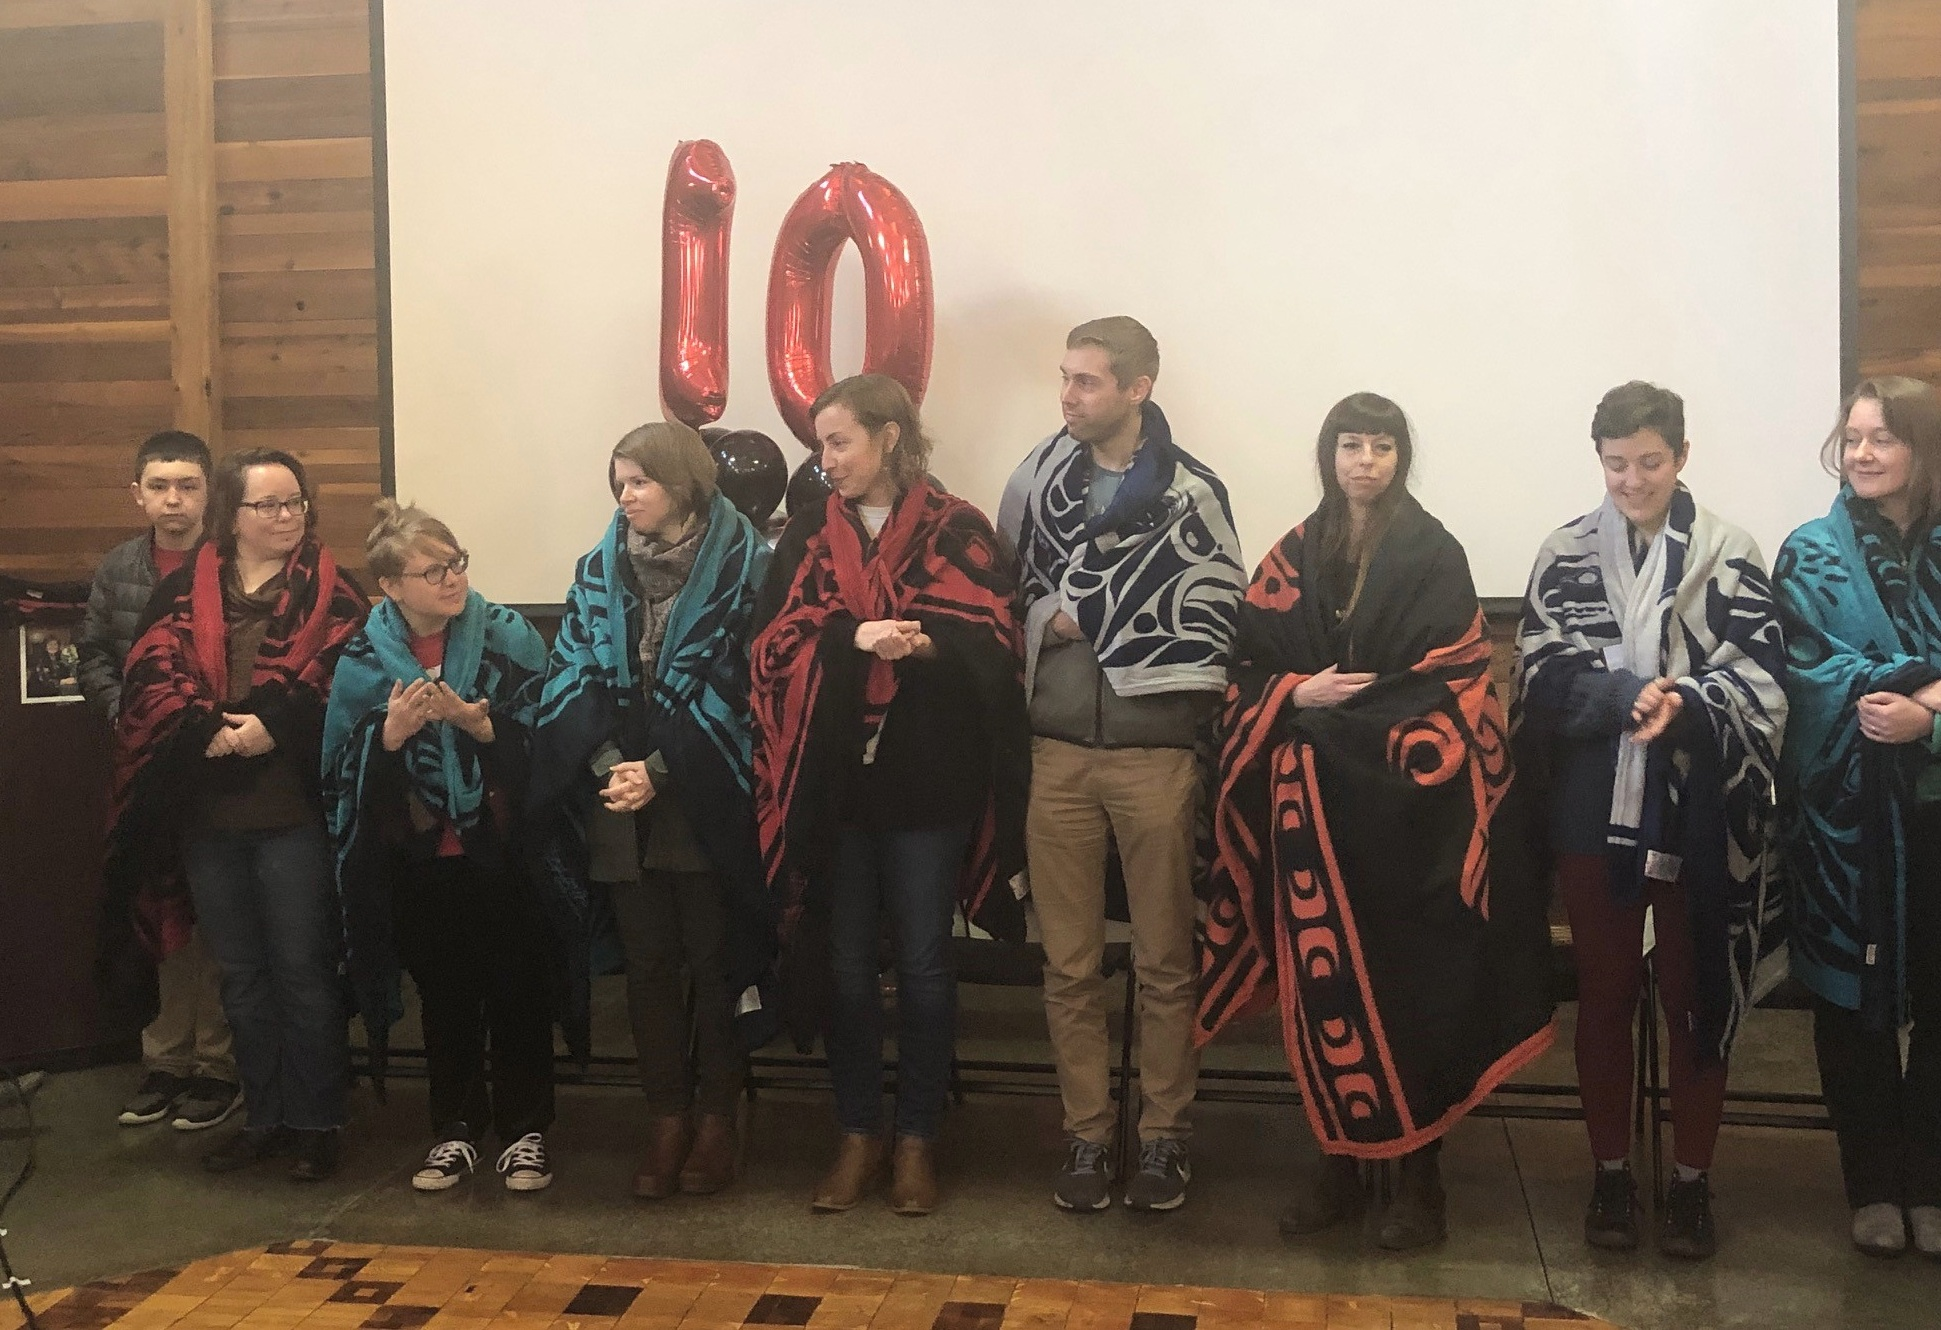 10th Anniversary Celebration - 2019 marks the ten year anniversary of the Duwamish Longhouse and Cultural Center. Join us in our tenth year as we continue to celebrate the building of our cultural center and our community.Picture: CARW Solidarity Group honoring